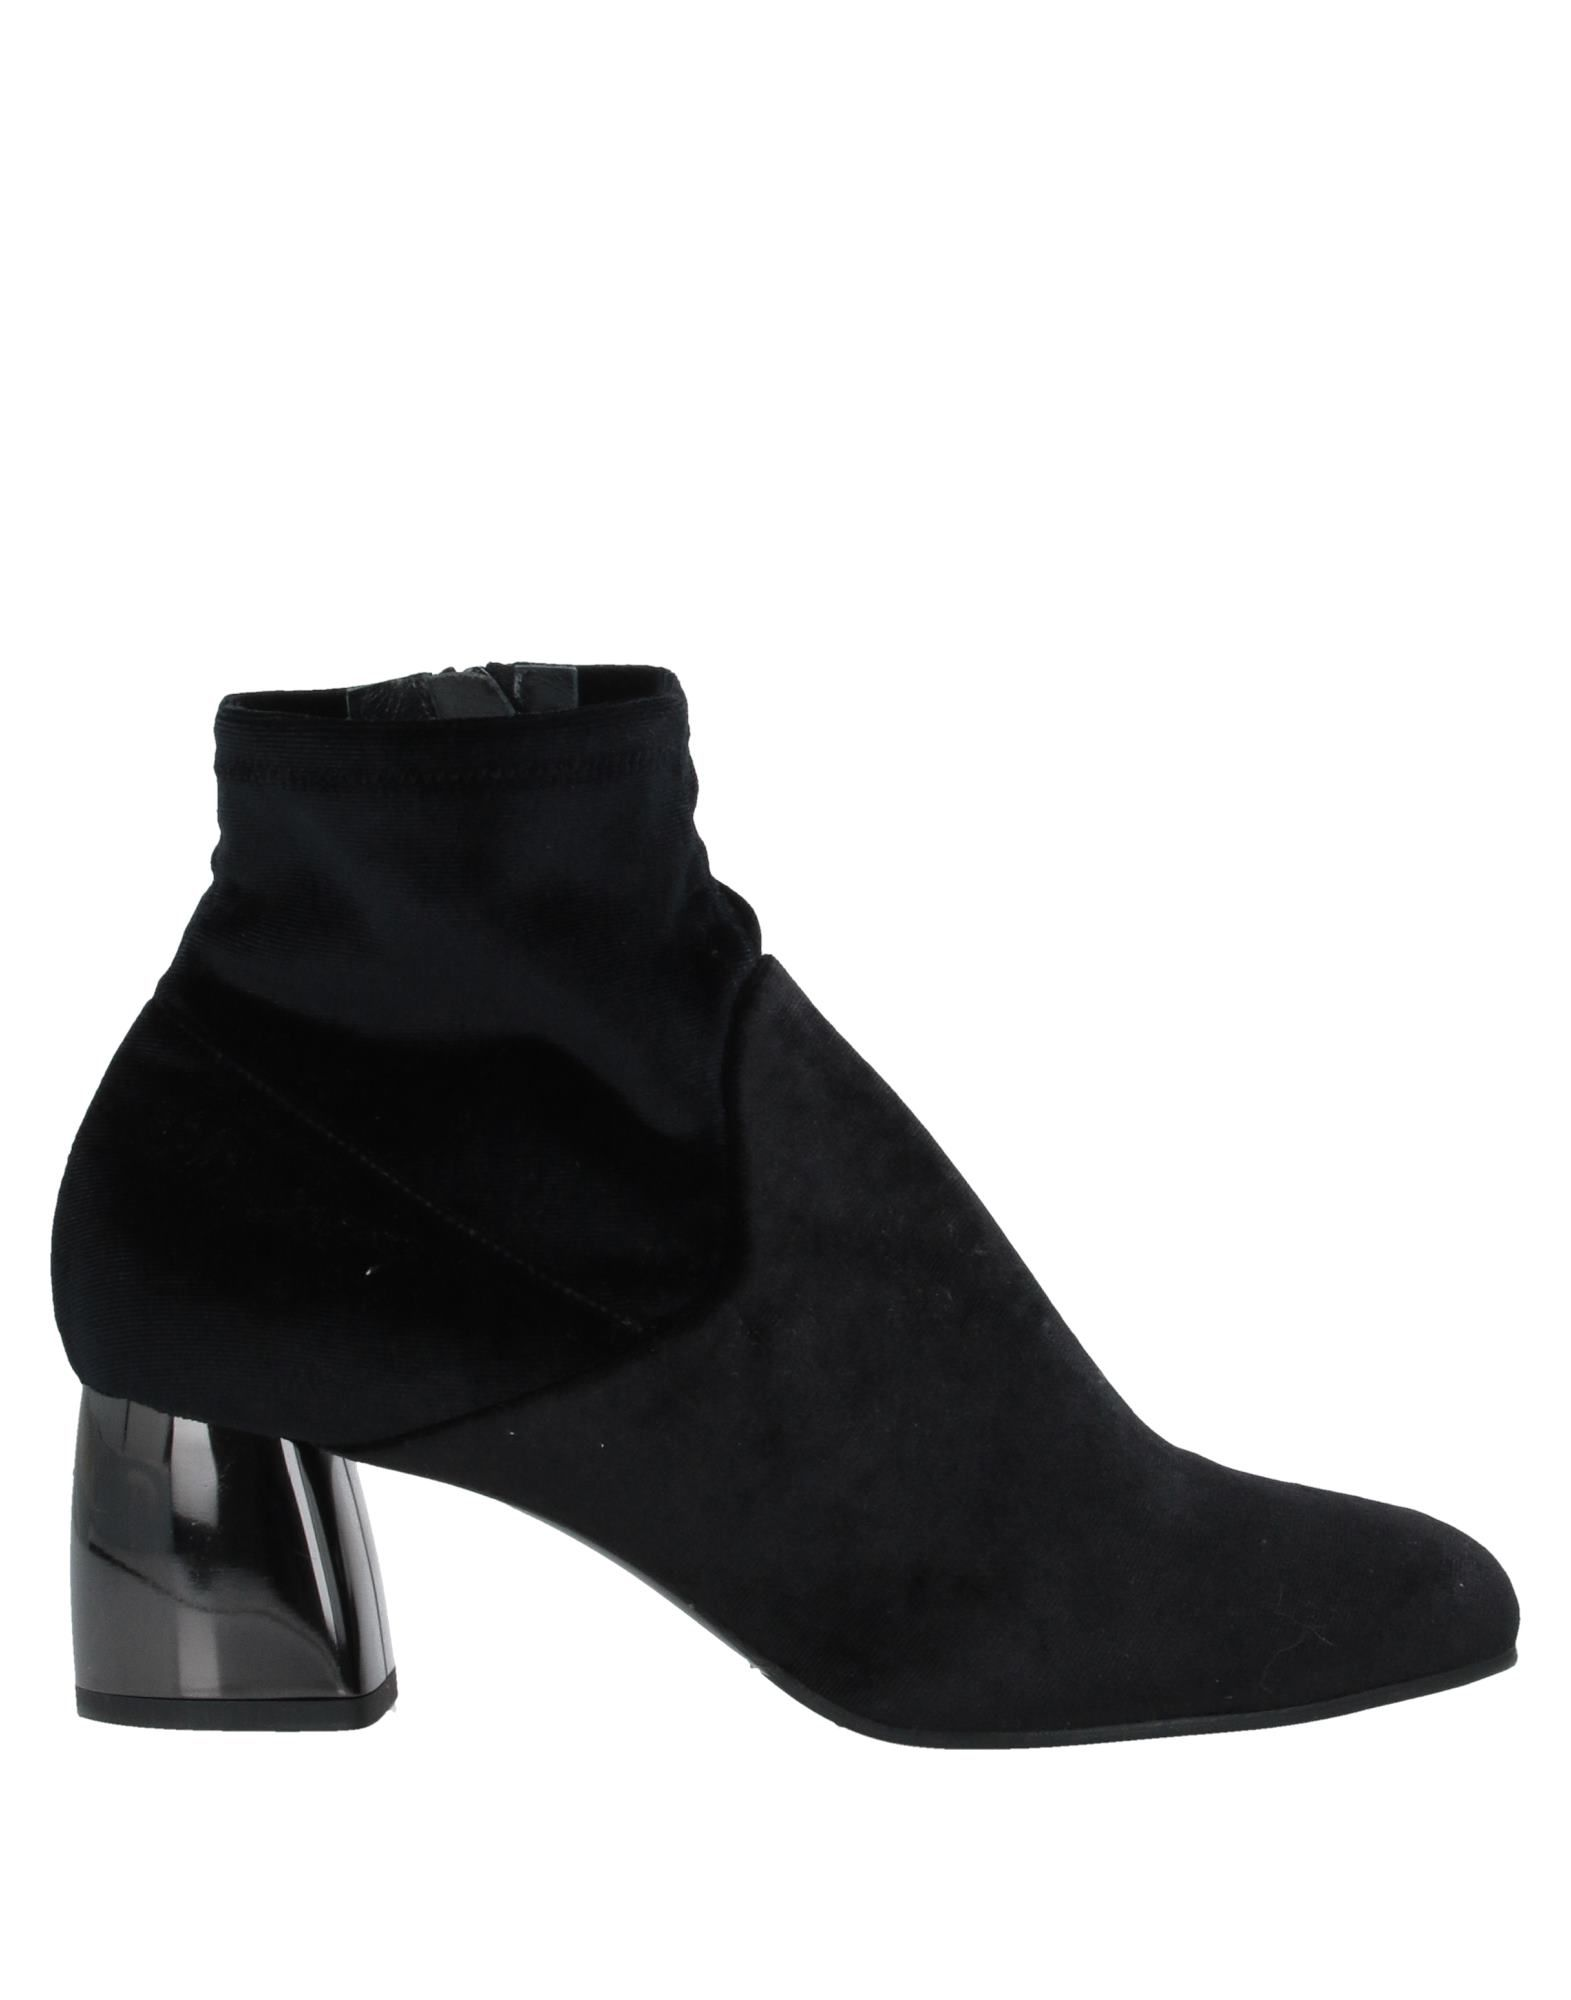 KENDY CLOSE New York Ankle boots - Item 11898447